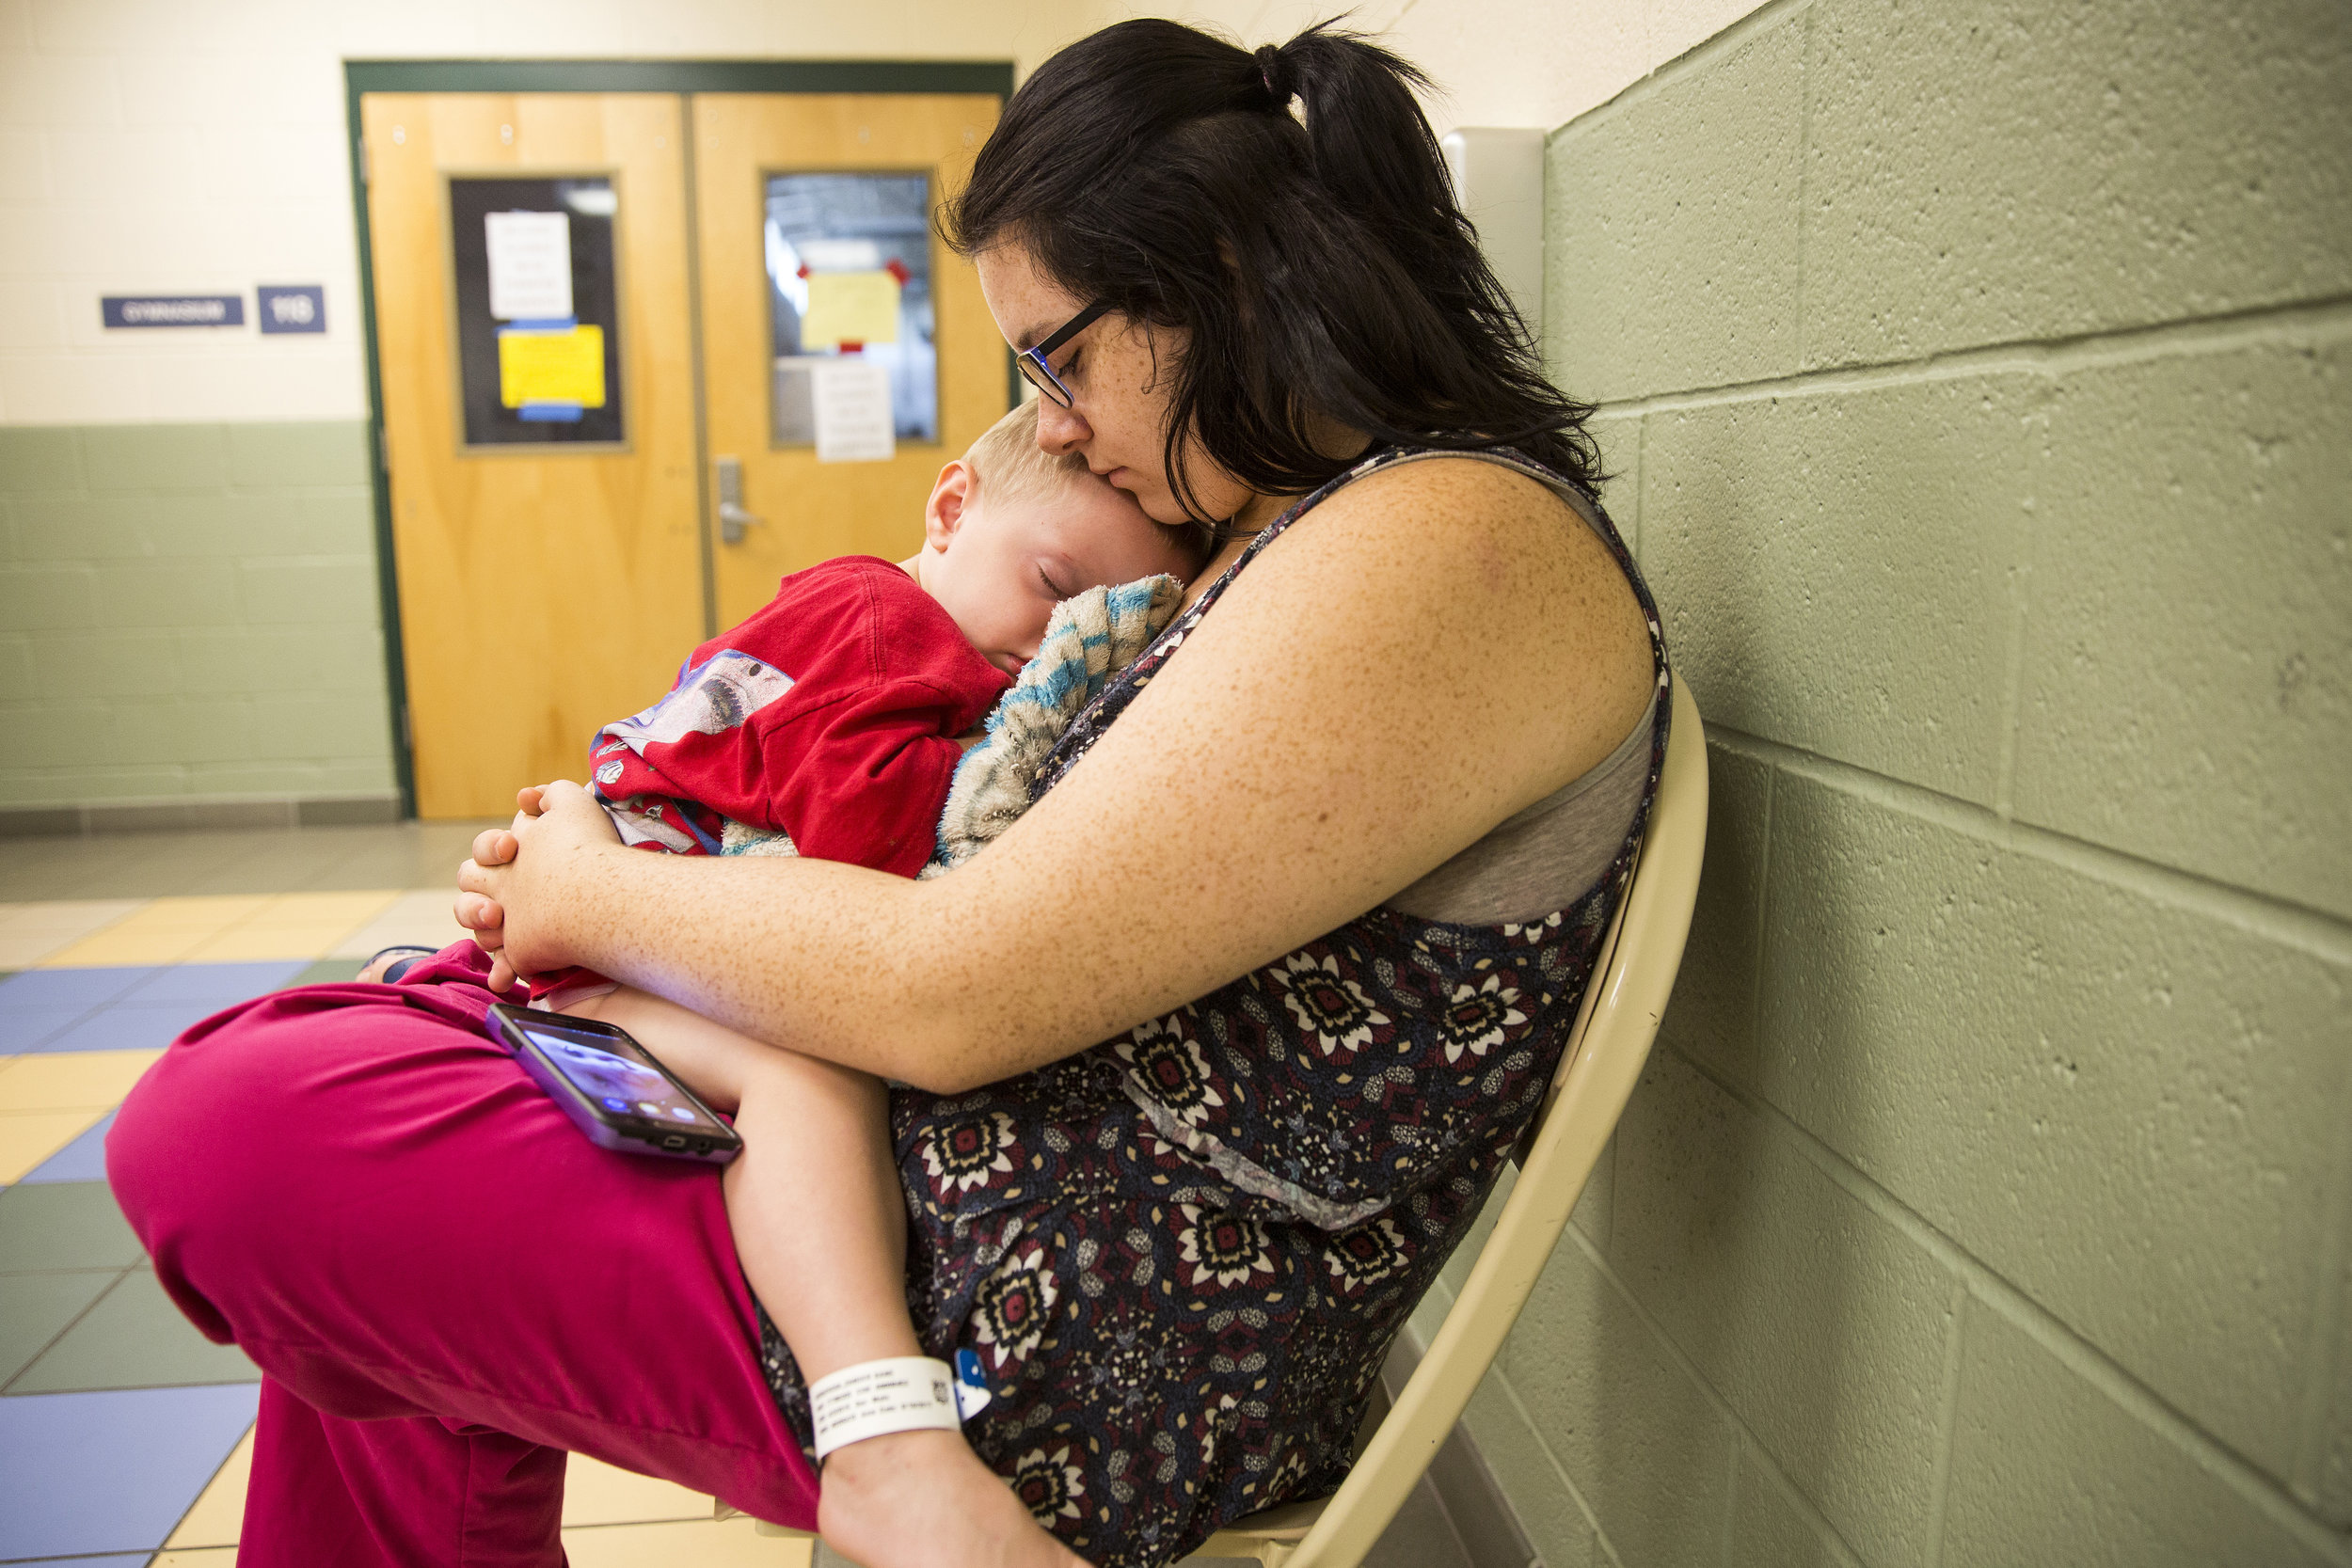 Gillian Verderosa and her 2-year-old son Zander wait for lunch to be served at the Estero Recreational Center, which remains an active emergency shelter under the American Red Cross on Wednesday, September 20, 2017. After sheltering initially at Florida Gulf Coast University and then Germain Arena, Verderosa hopes to secure a new living situation soon.